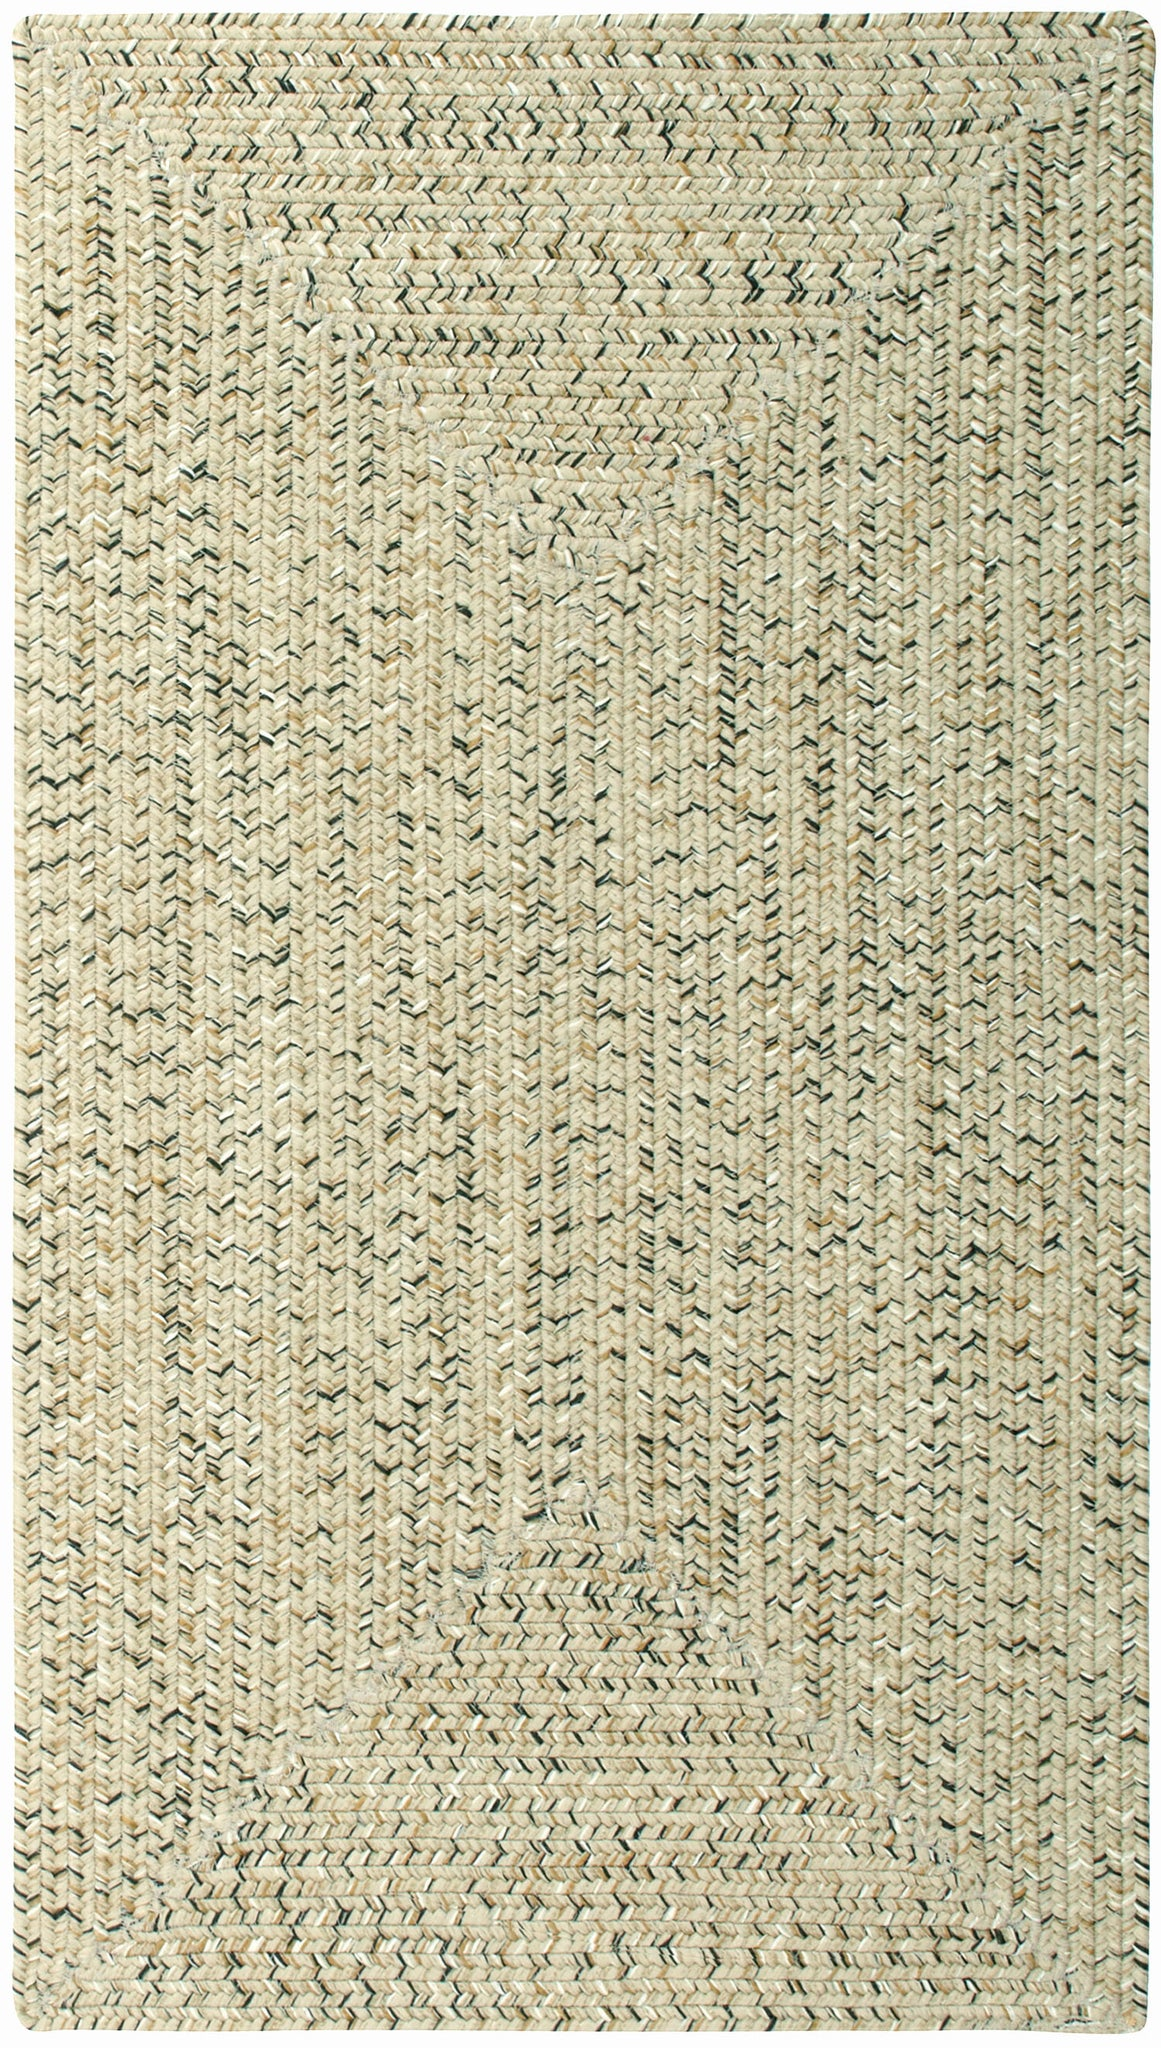 Capel Sea Pottery 0110 Sandy Beach 600 Area Rug main image